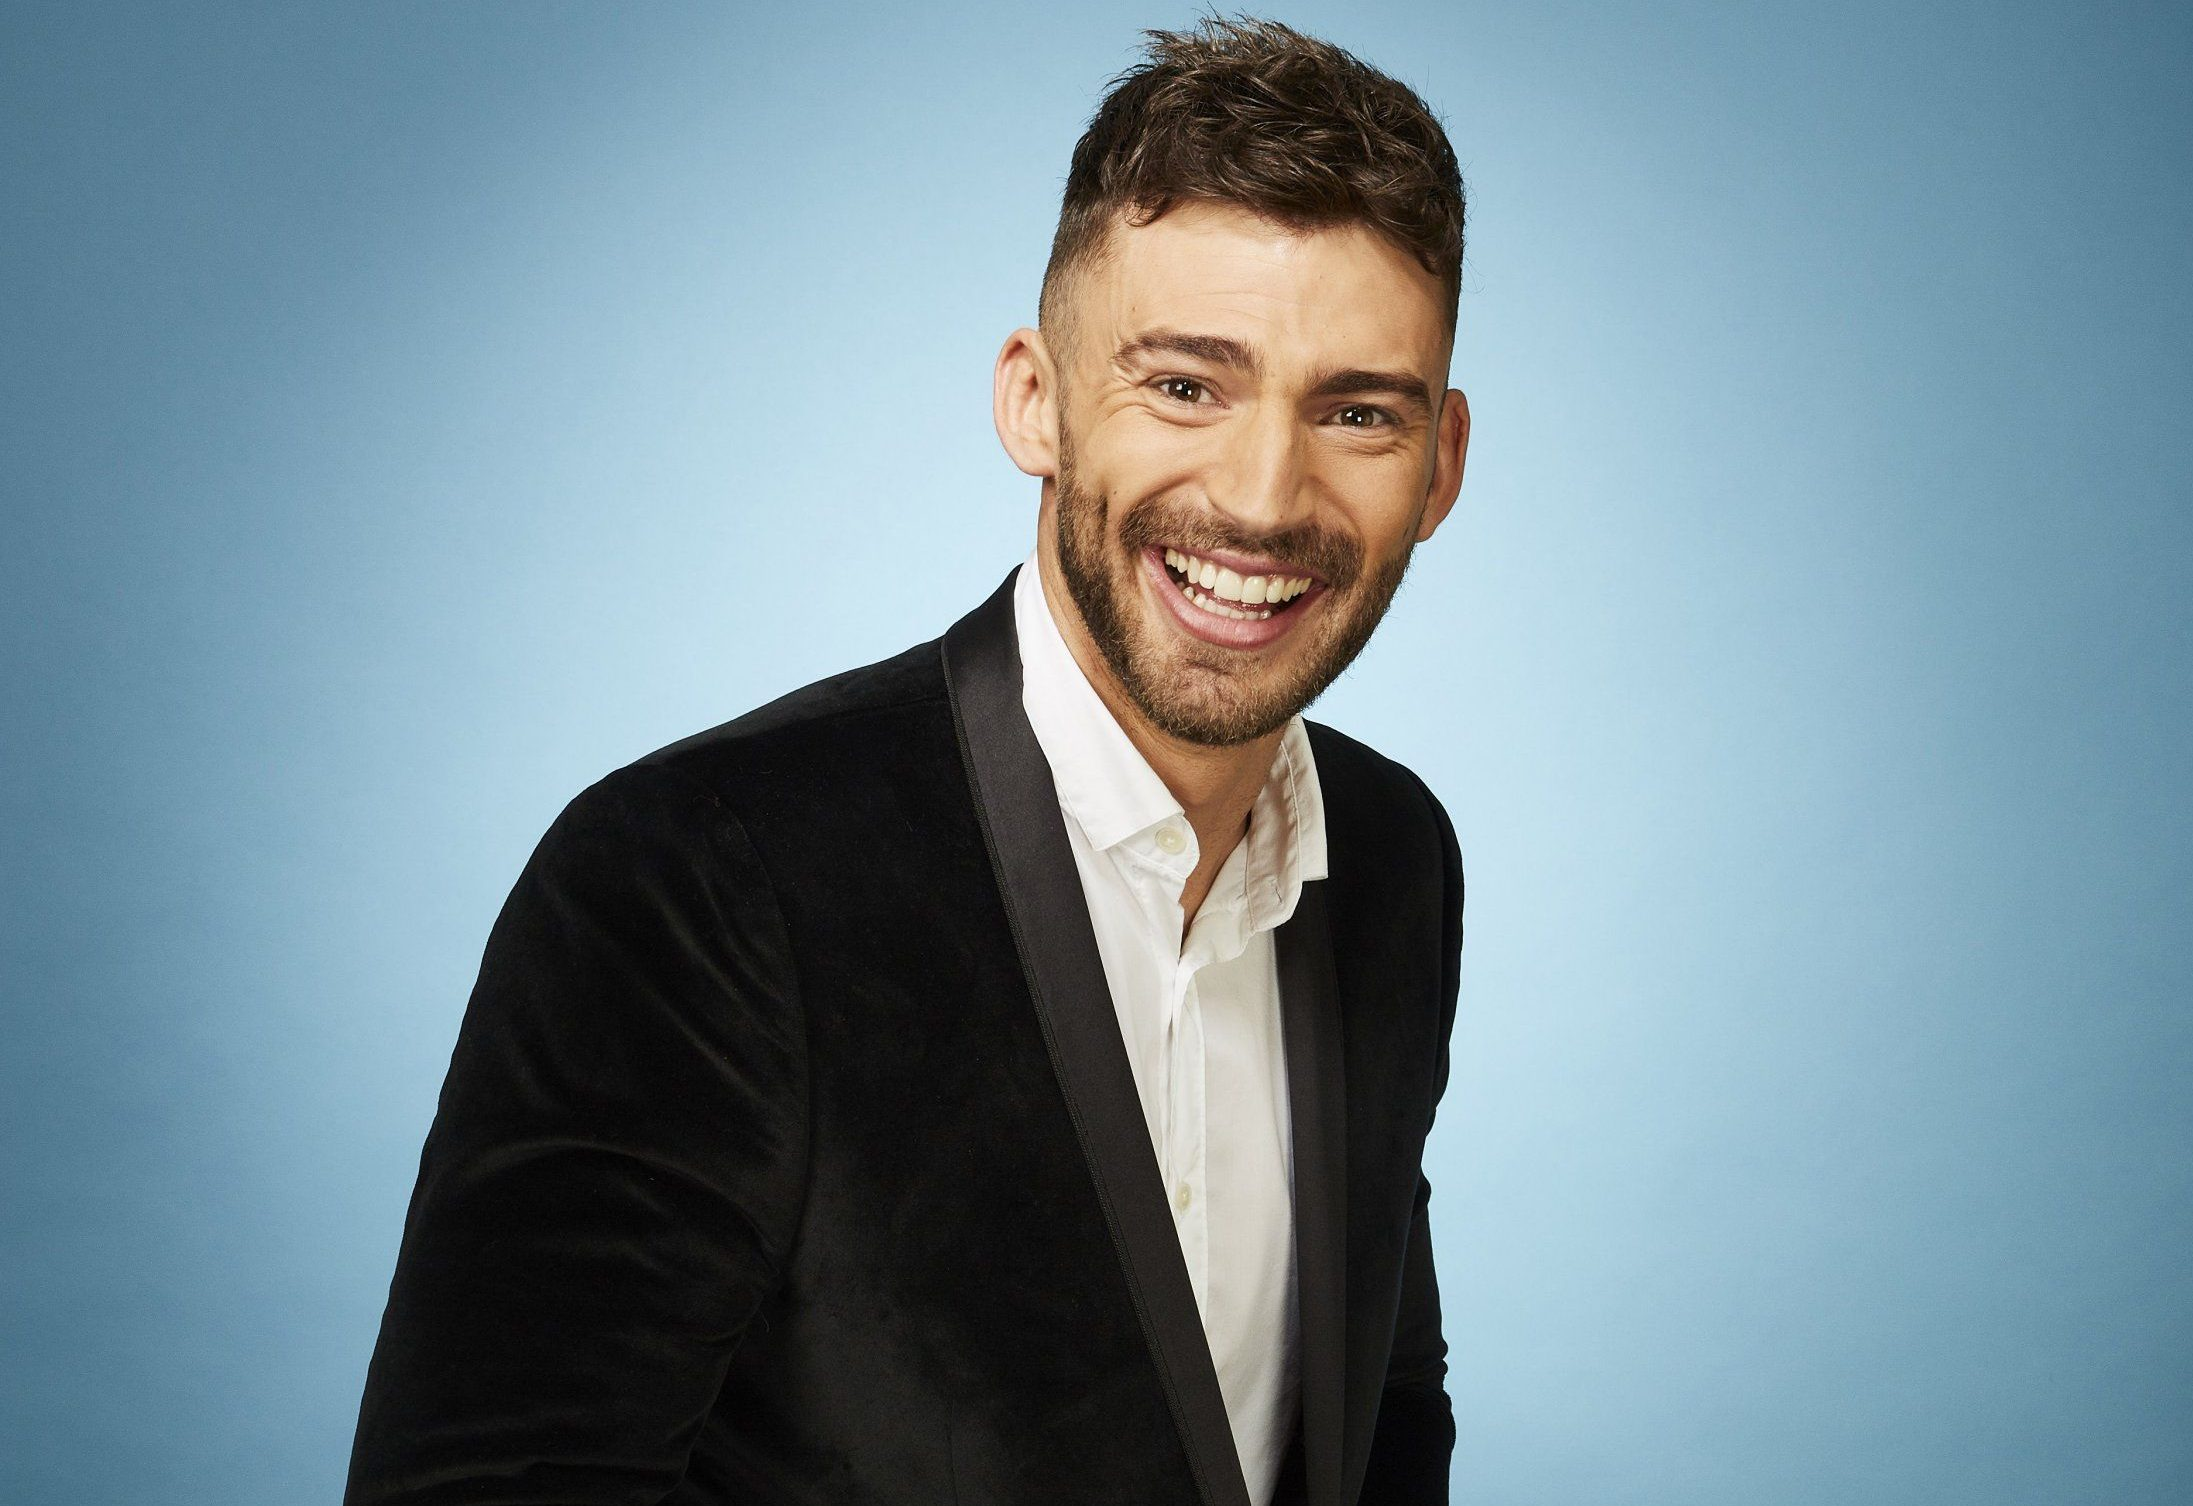 Who is Jake Quickenden, what's his net worth and how did he meet fiancee Danielle Fogarty?